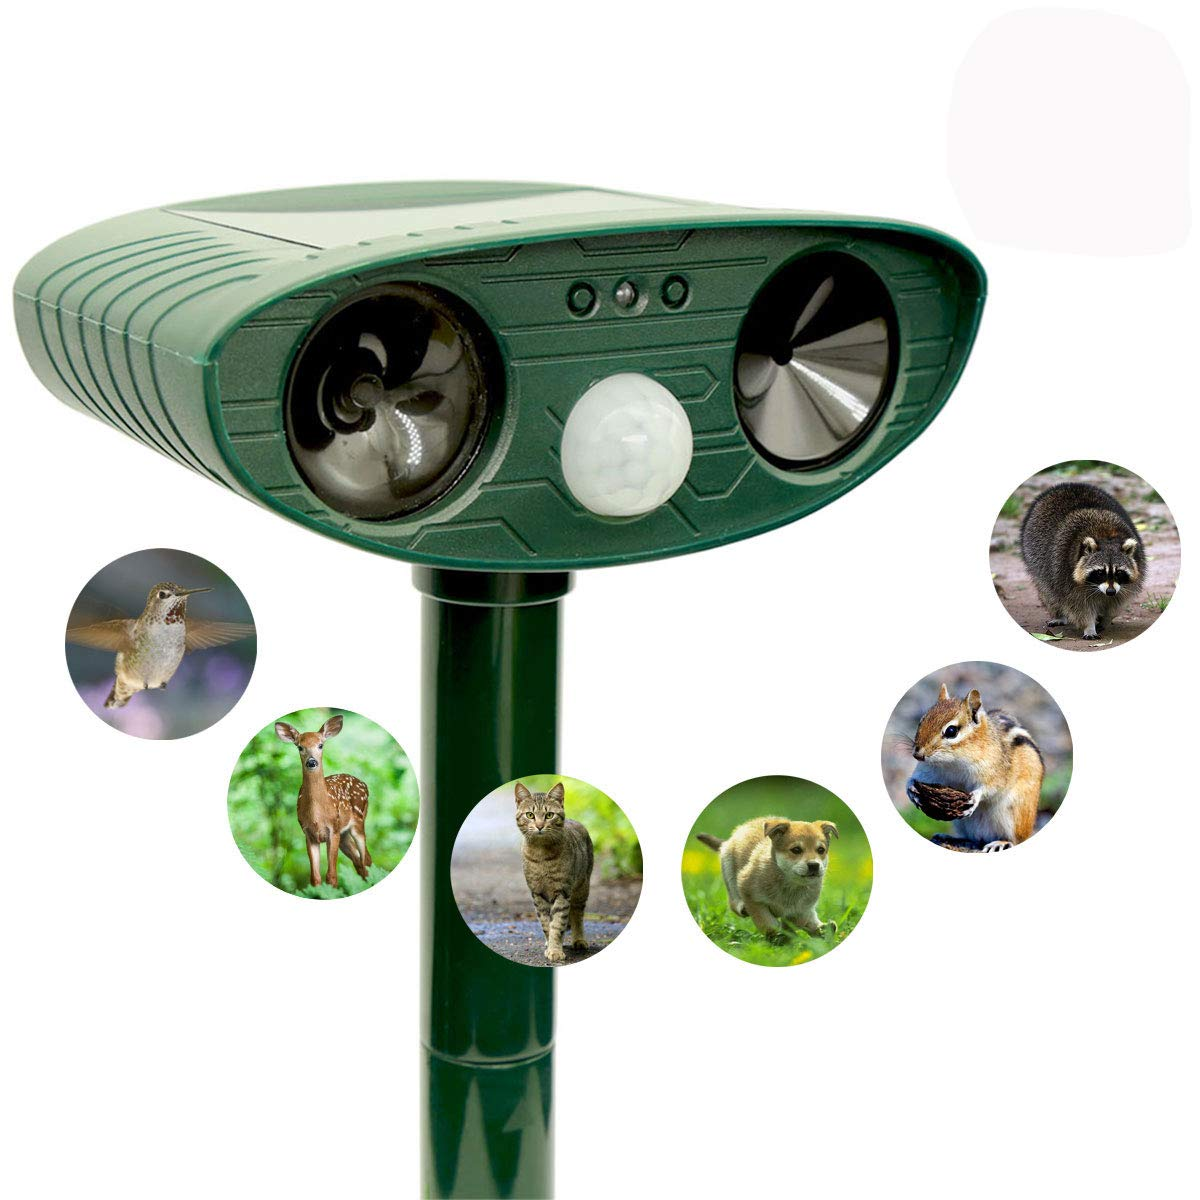 ZOVENCHI Ultrasonic Animal Repeller, Solar Powered repellent with Motion Sensor Ultrasonic and Red Flashing lights Outdoor Waterproof Farm Garden Yard repellent, Cats, Dogs, Foxes, Birds, Skunks, rod by ZOVENCHI